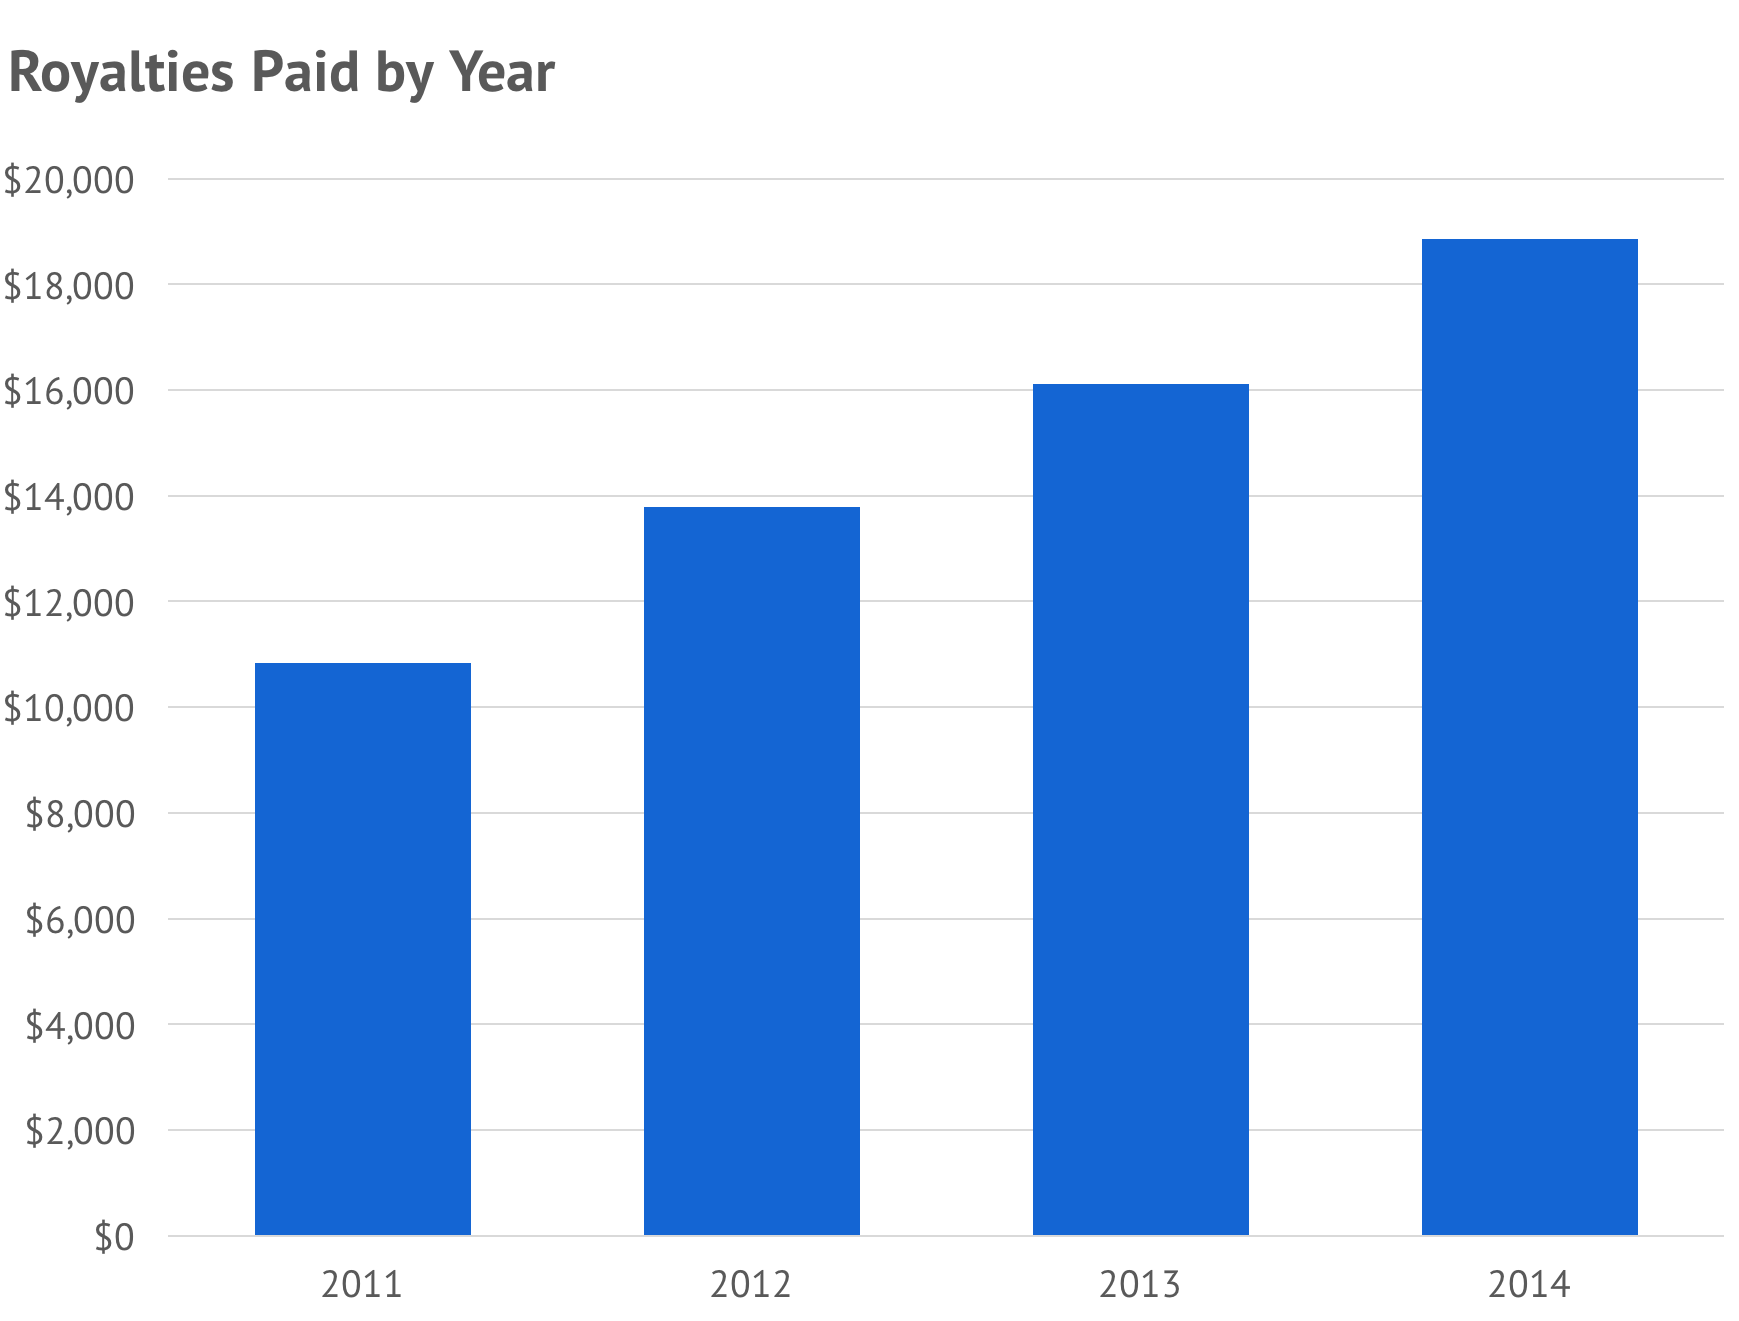 Royalties Paid by Year Bar Graph